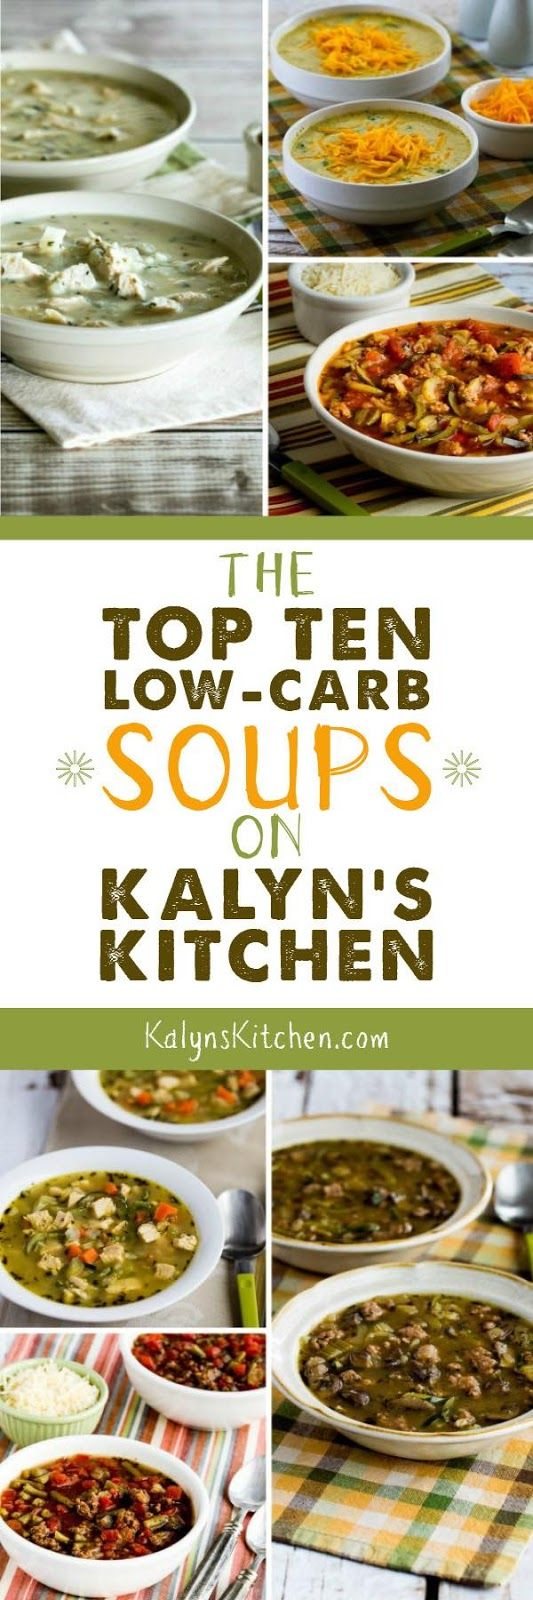 Low-Carb Recipe Love: The Top Ten Low-Carb Soup Recipes on Kalyn's Kitchen; all soups are low-carb, low-glycemic, and gluten-free, some are Keto, South Beach Diet Friendly, meatless, Paleo, or Whole 30. [found on KalynsKitchen.com]